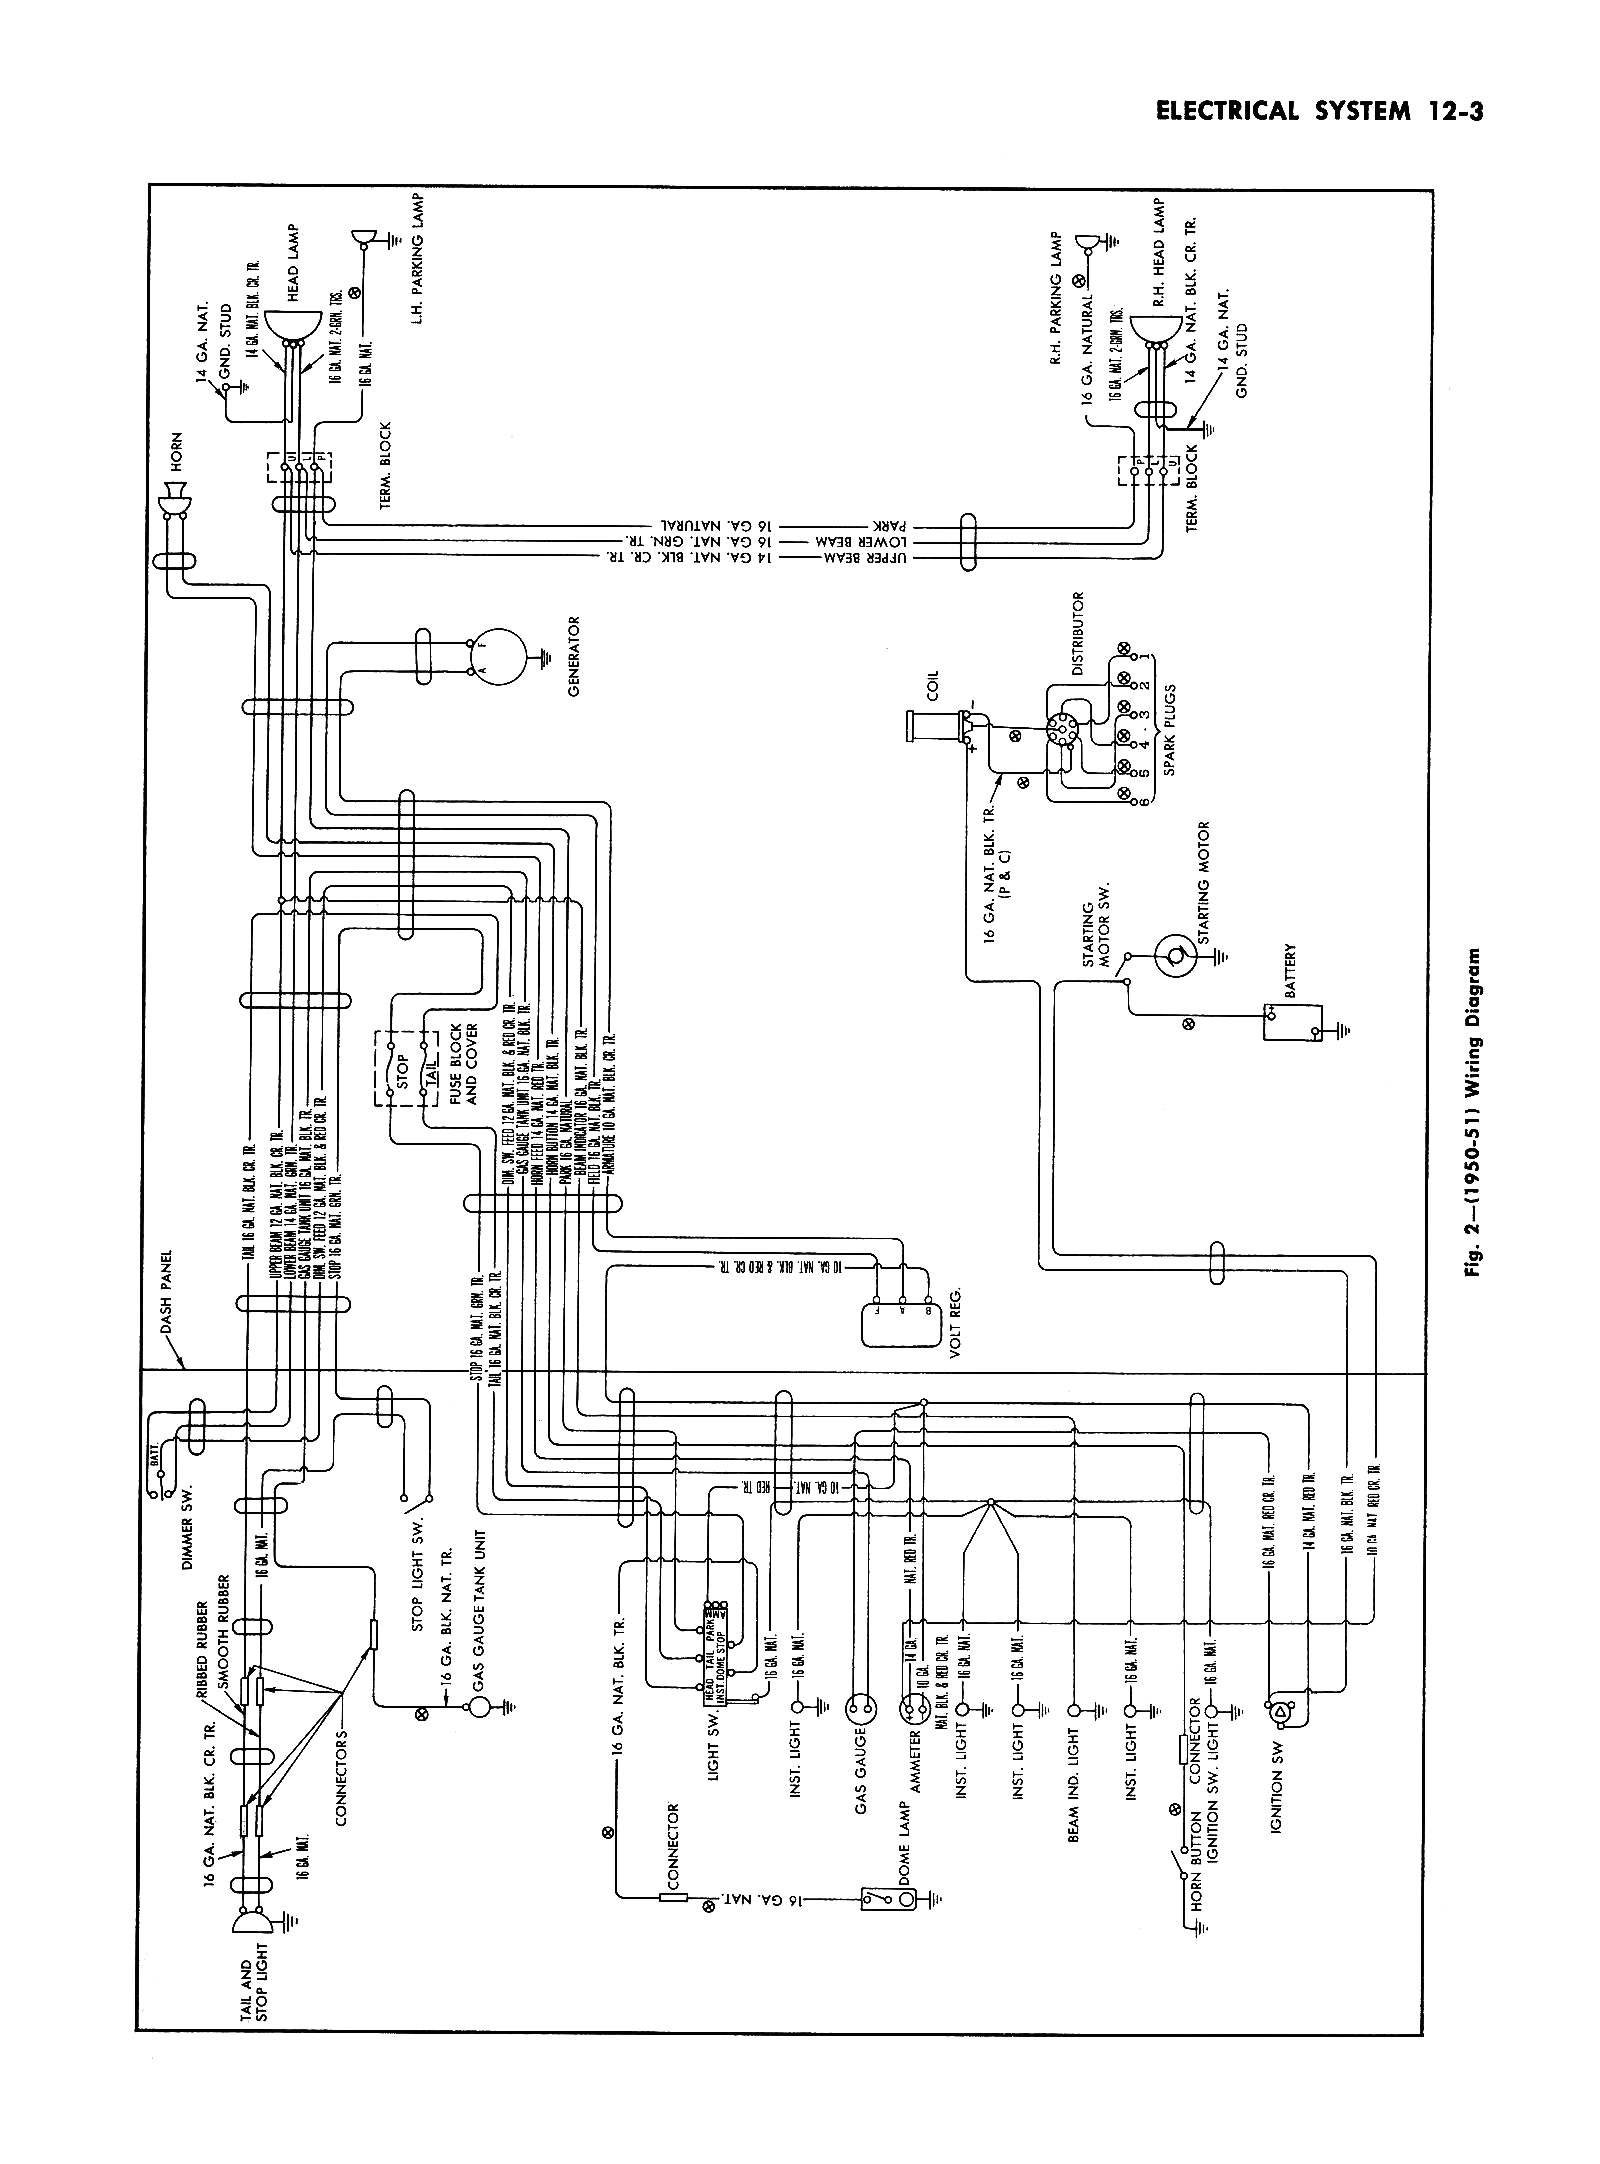 chevy wiring diagrams wiring diagram for 1959 chevy pickup